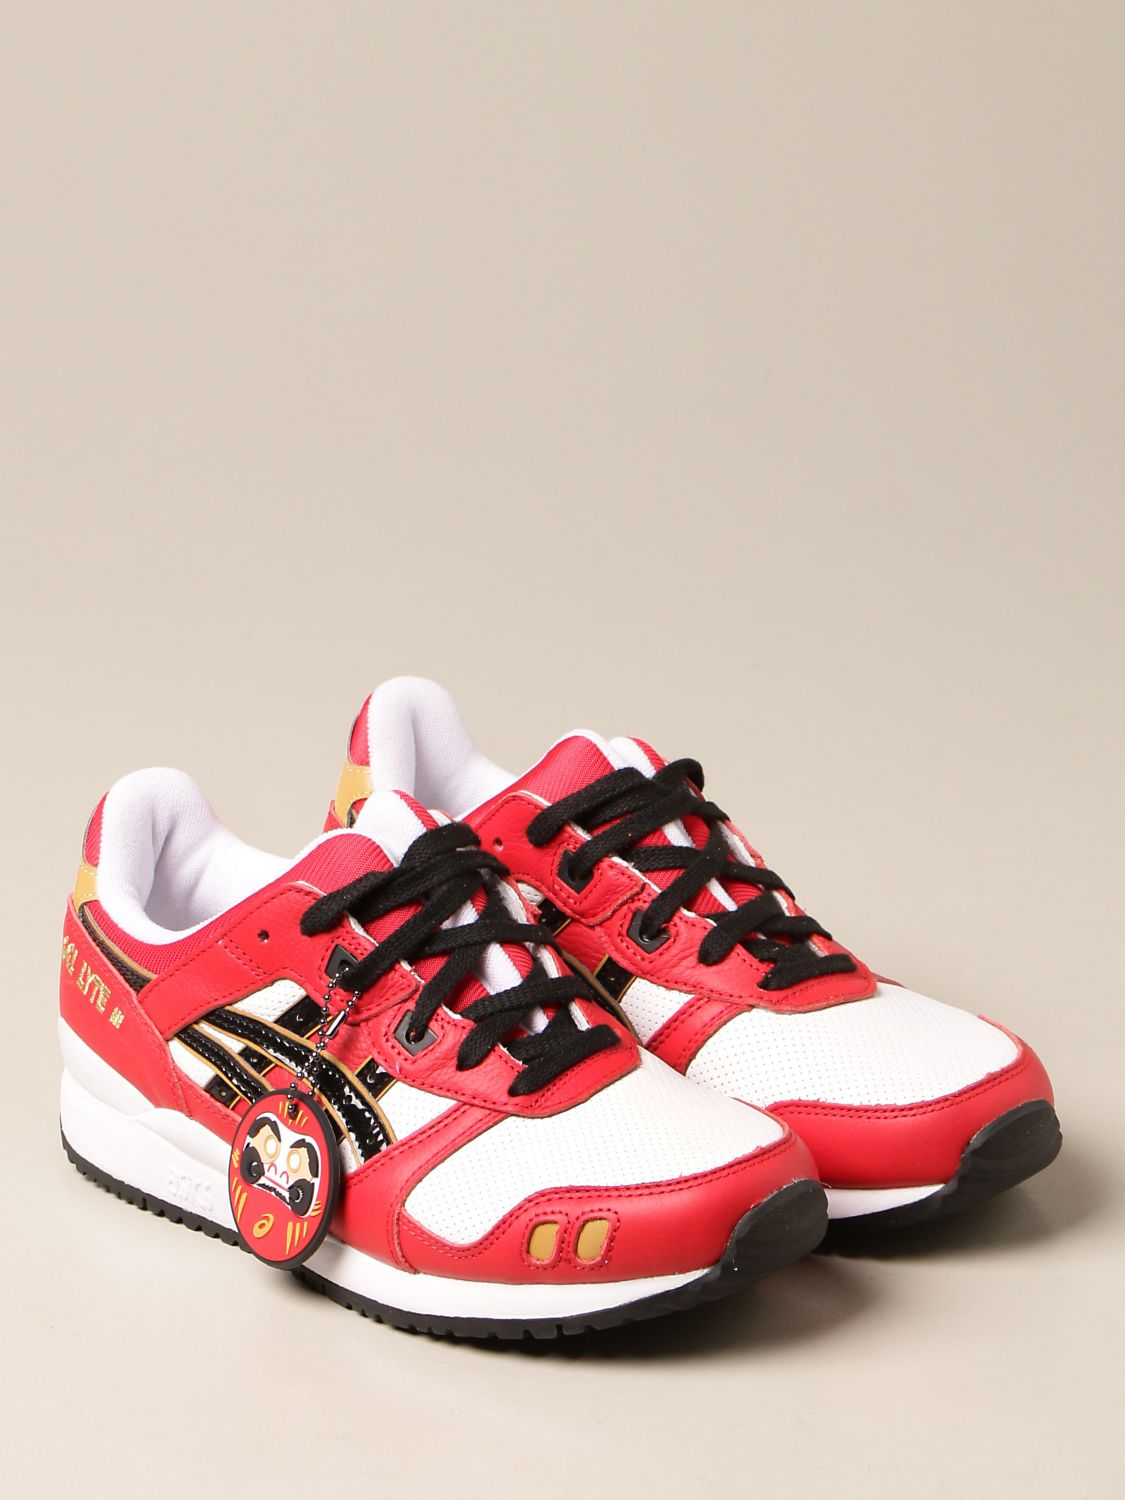 Trainers Asics: Trainers men Asics red 2